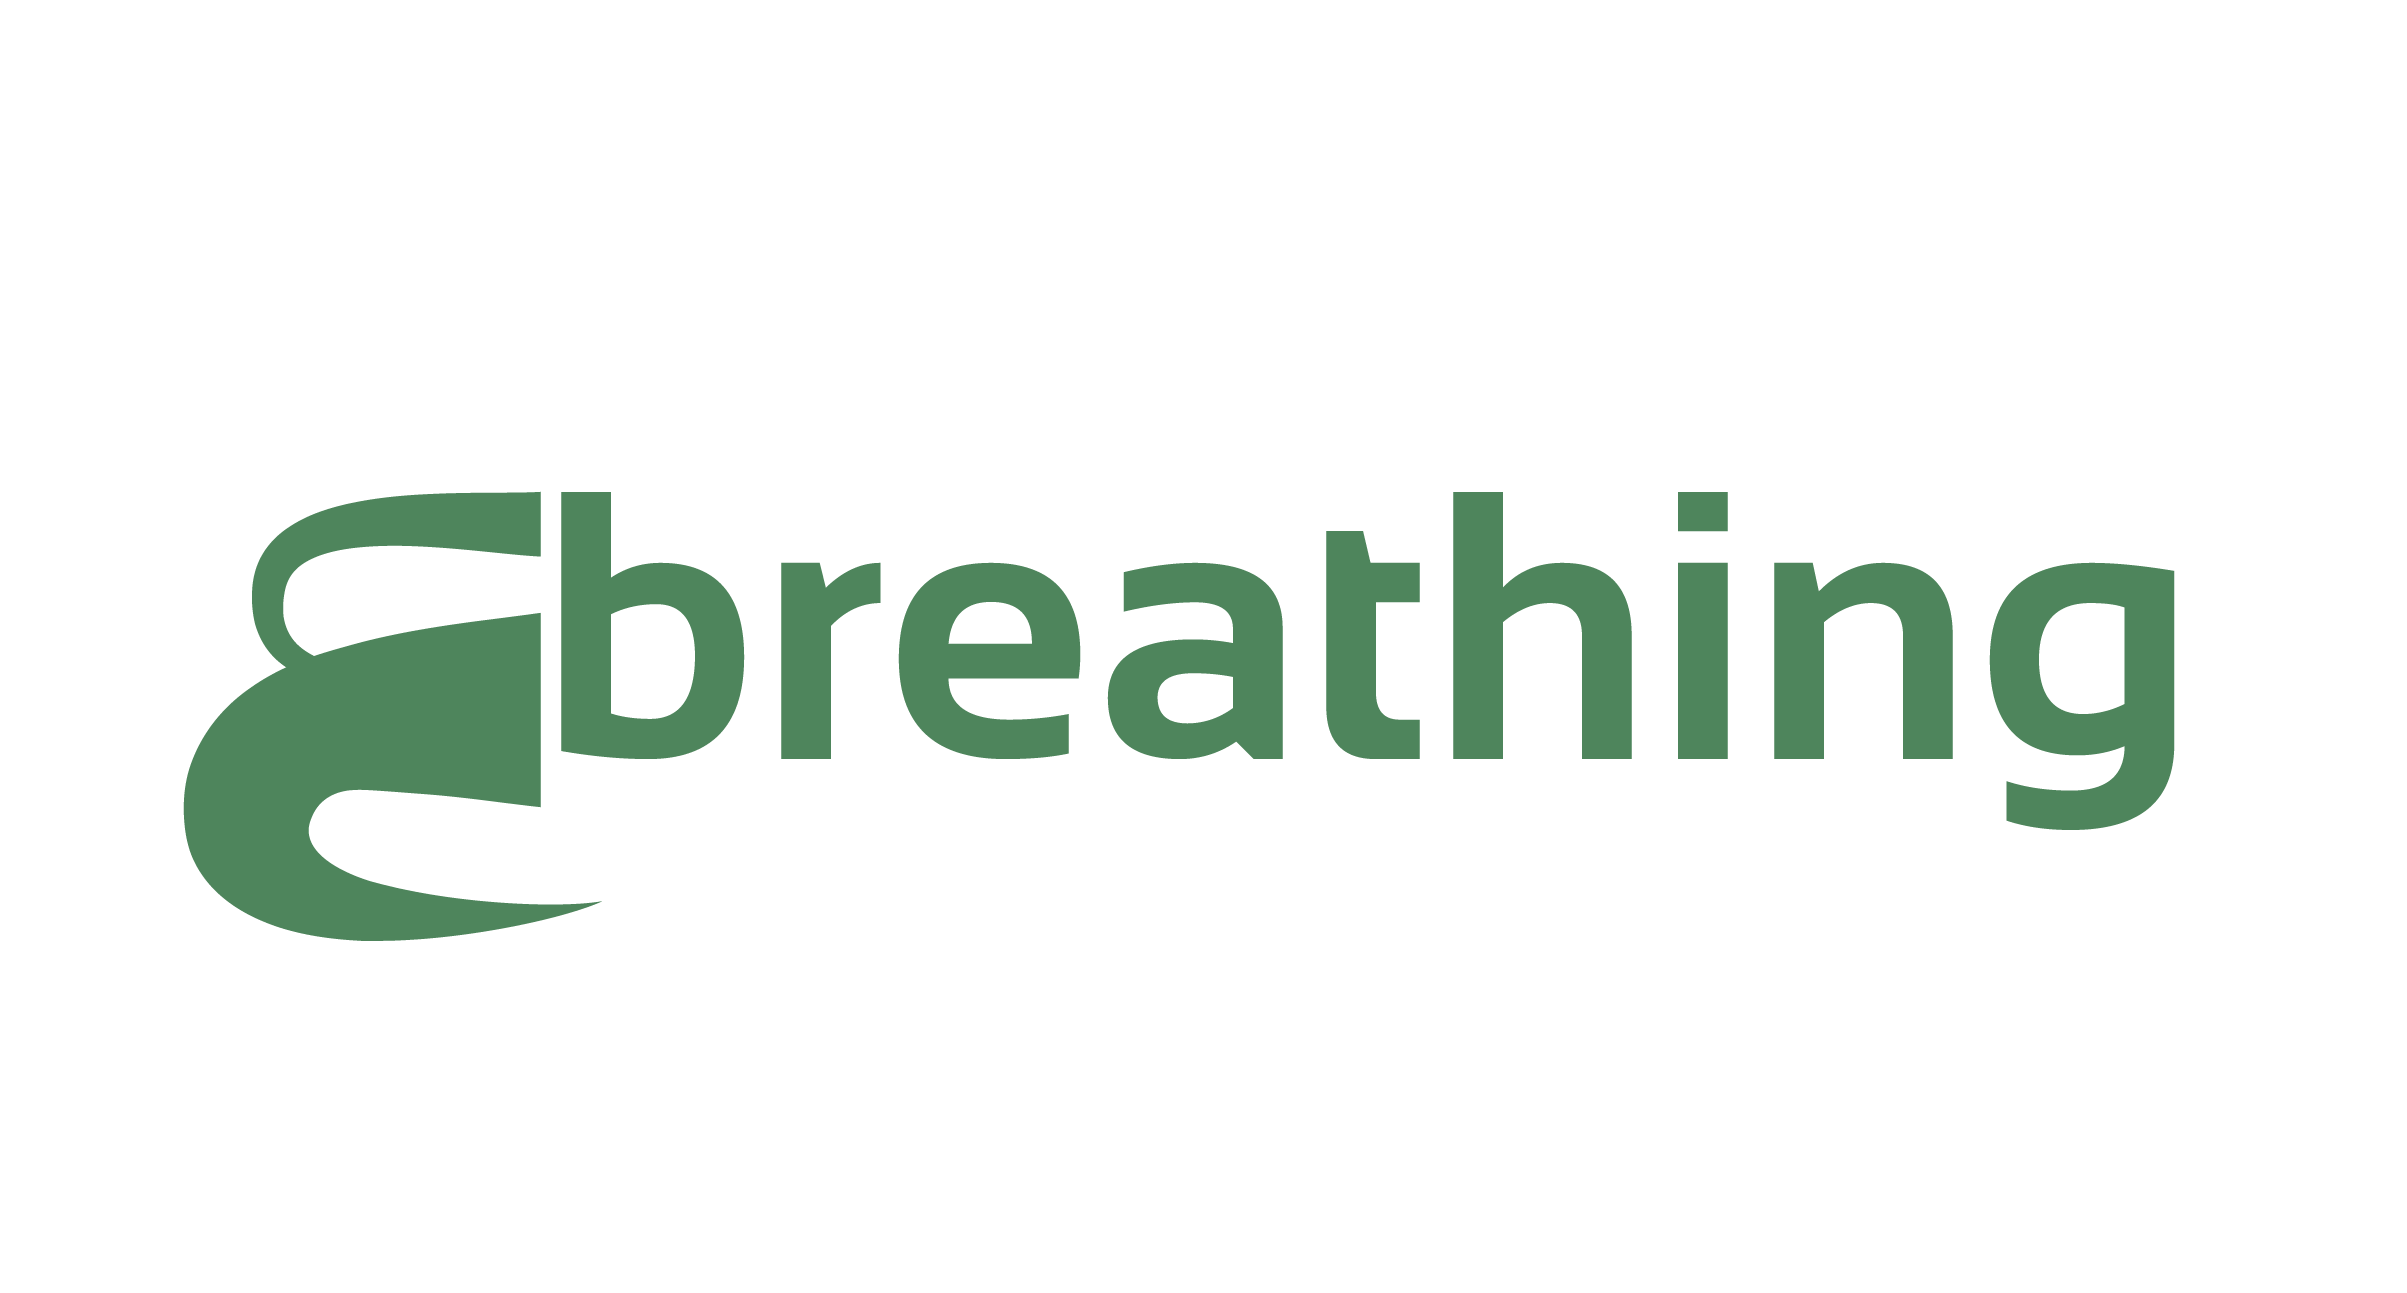 Breathing Creative Tank